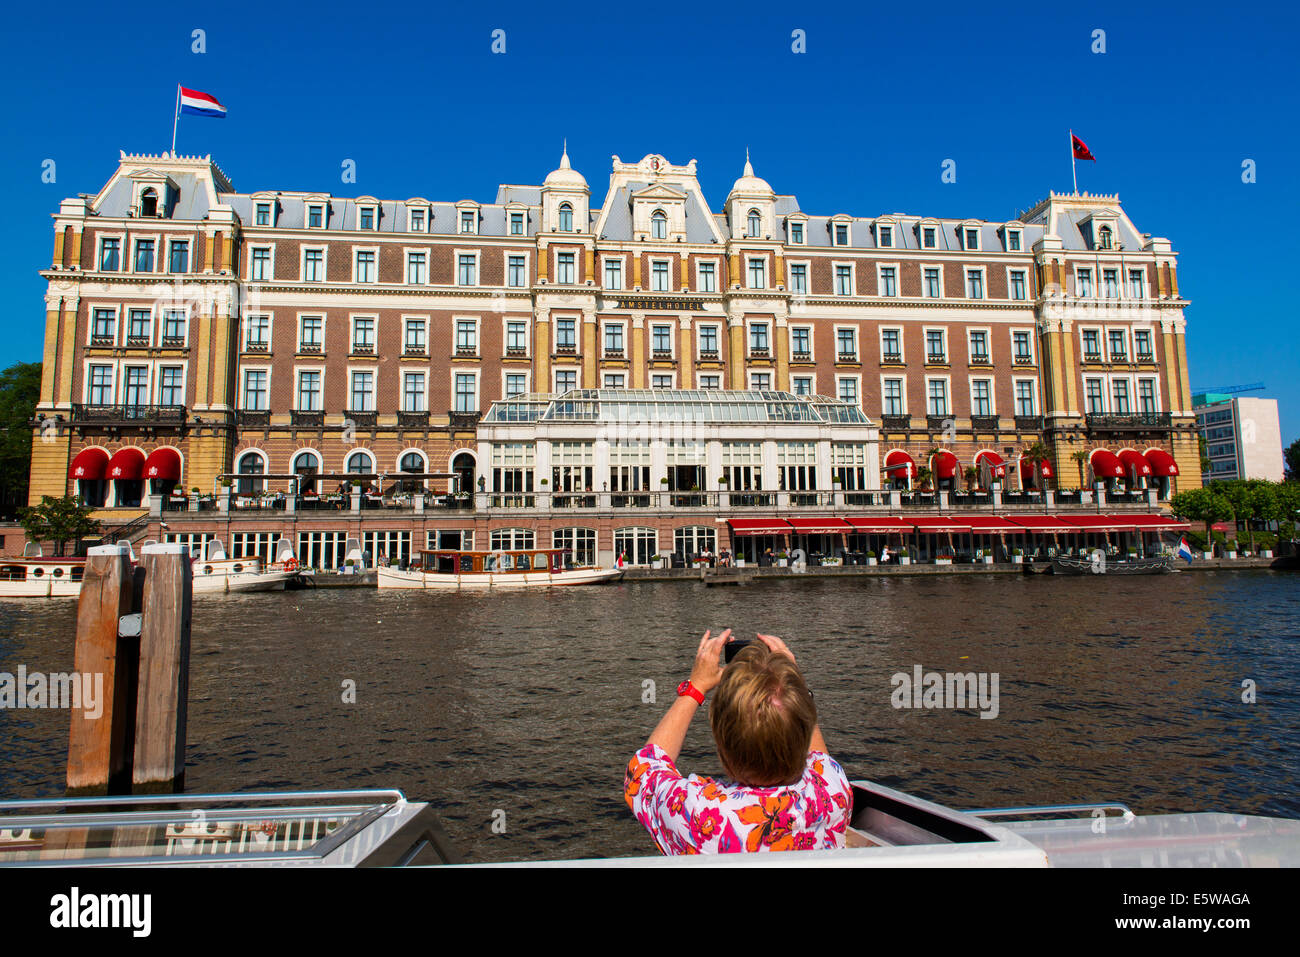 intercontinental amstel hotel, amsterdam, holland - Stock Image